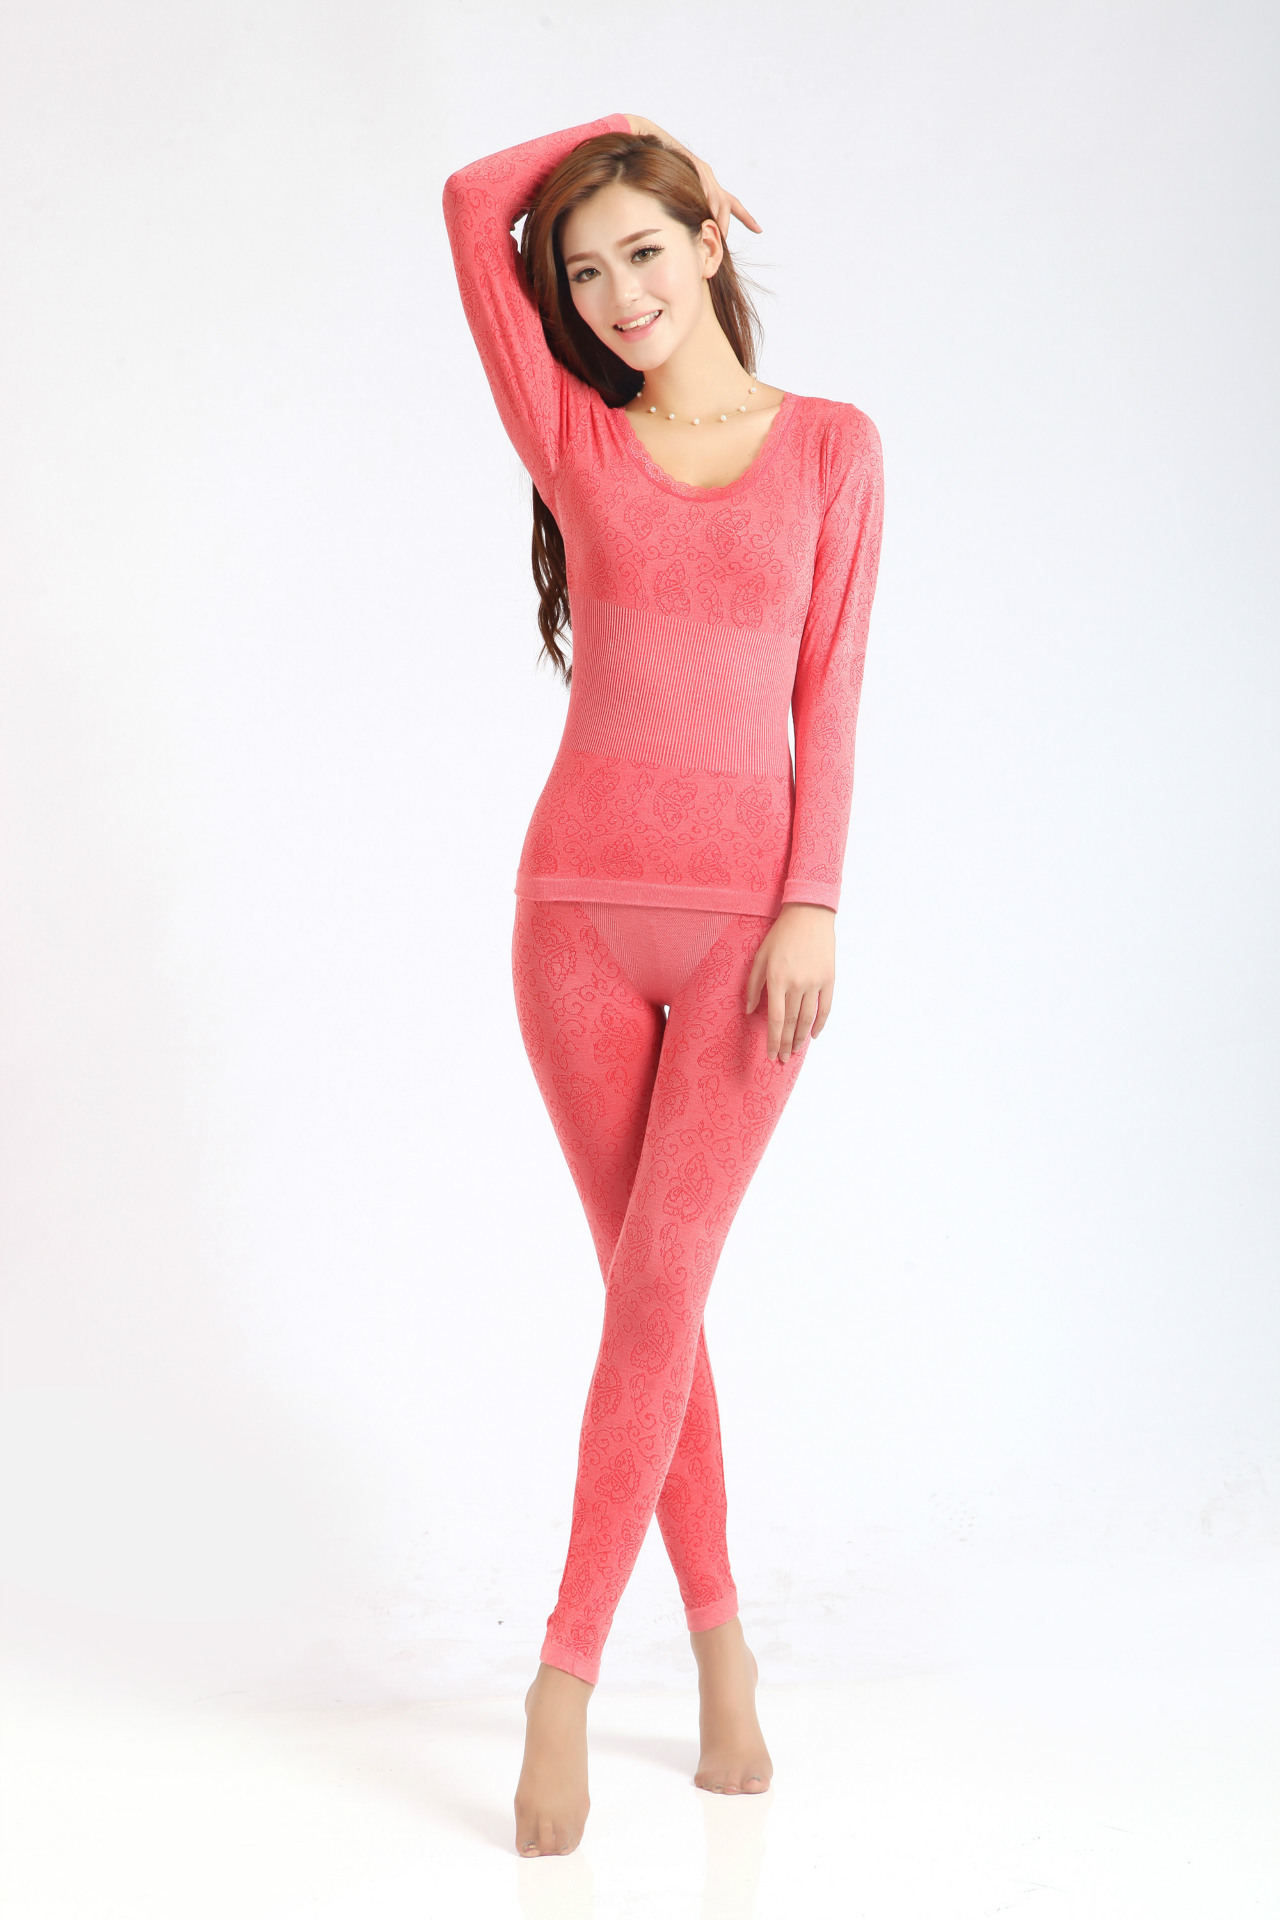 qrqceh.tk: winter pajamas for women. Gift Certificates/Cards International Hot New Releases Best Sellers Today's Deals Sell Your Stuff Search results. of over 9, PajamaMania fleece pajamas sets will keep you warm and cozy all winter long.